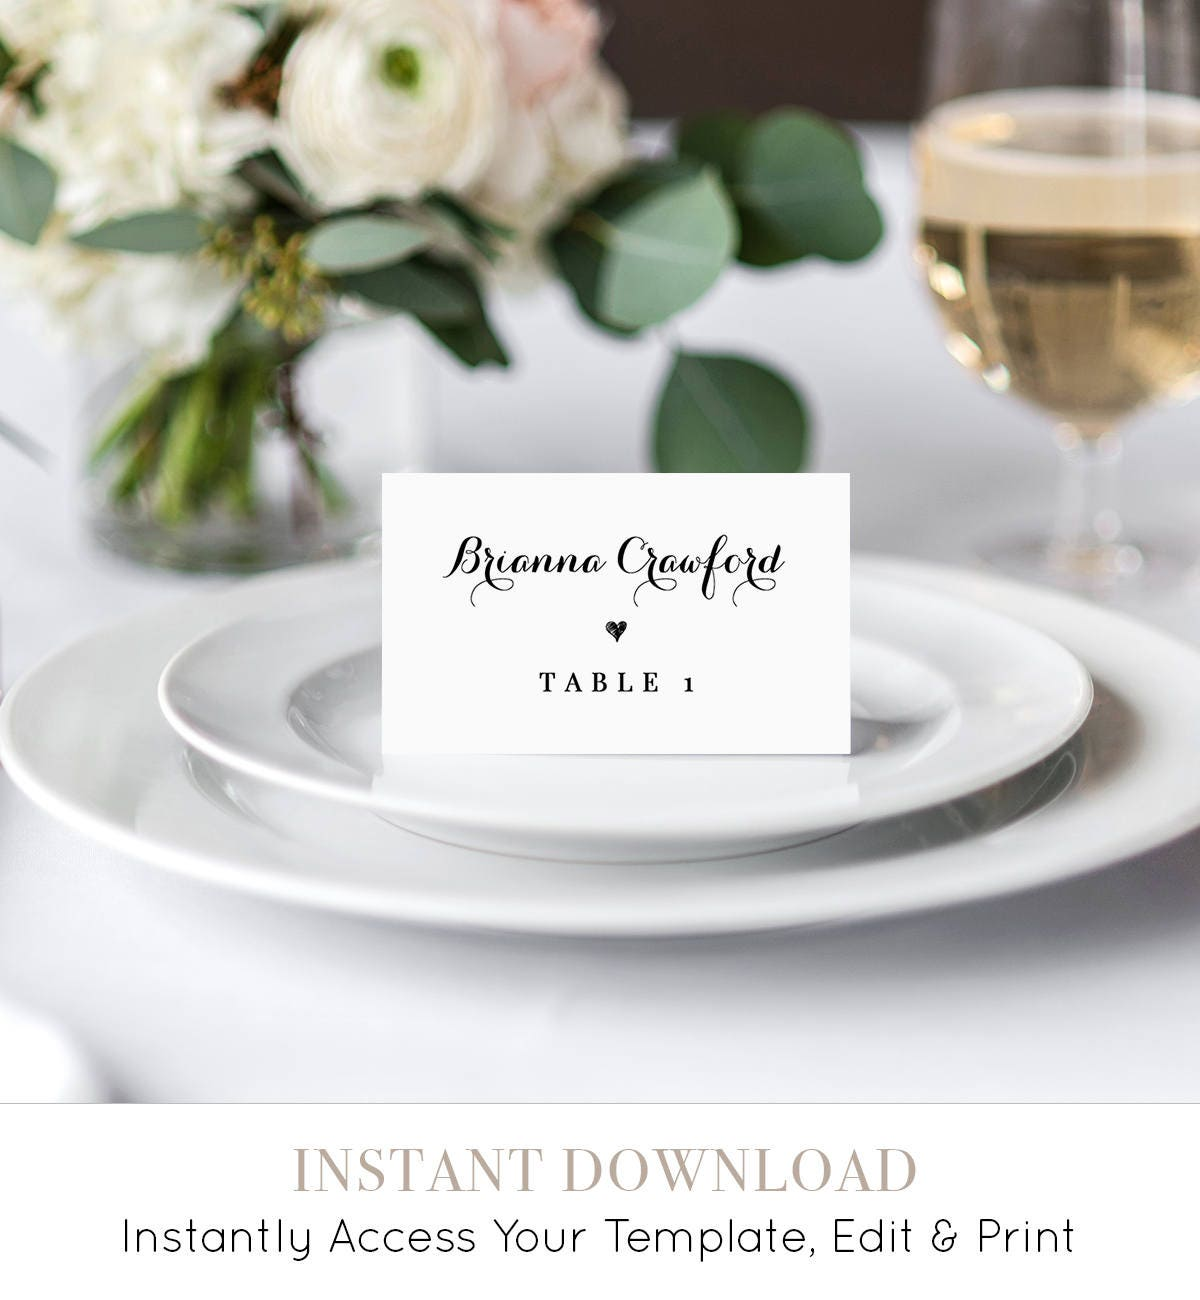 Corjl #002-202PC Printable Escort Card Editable Name Cards Navy /& Blush Floral Wedding Place Card Template Editable Instant Download